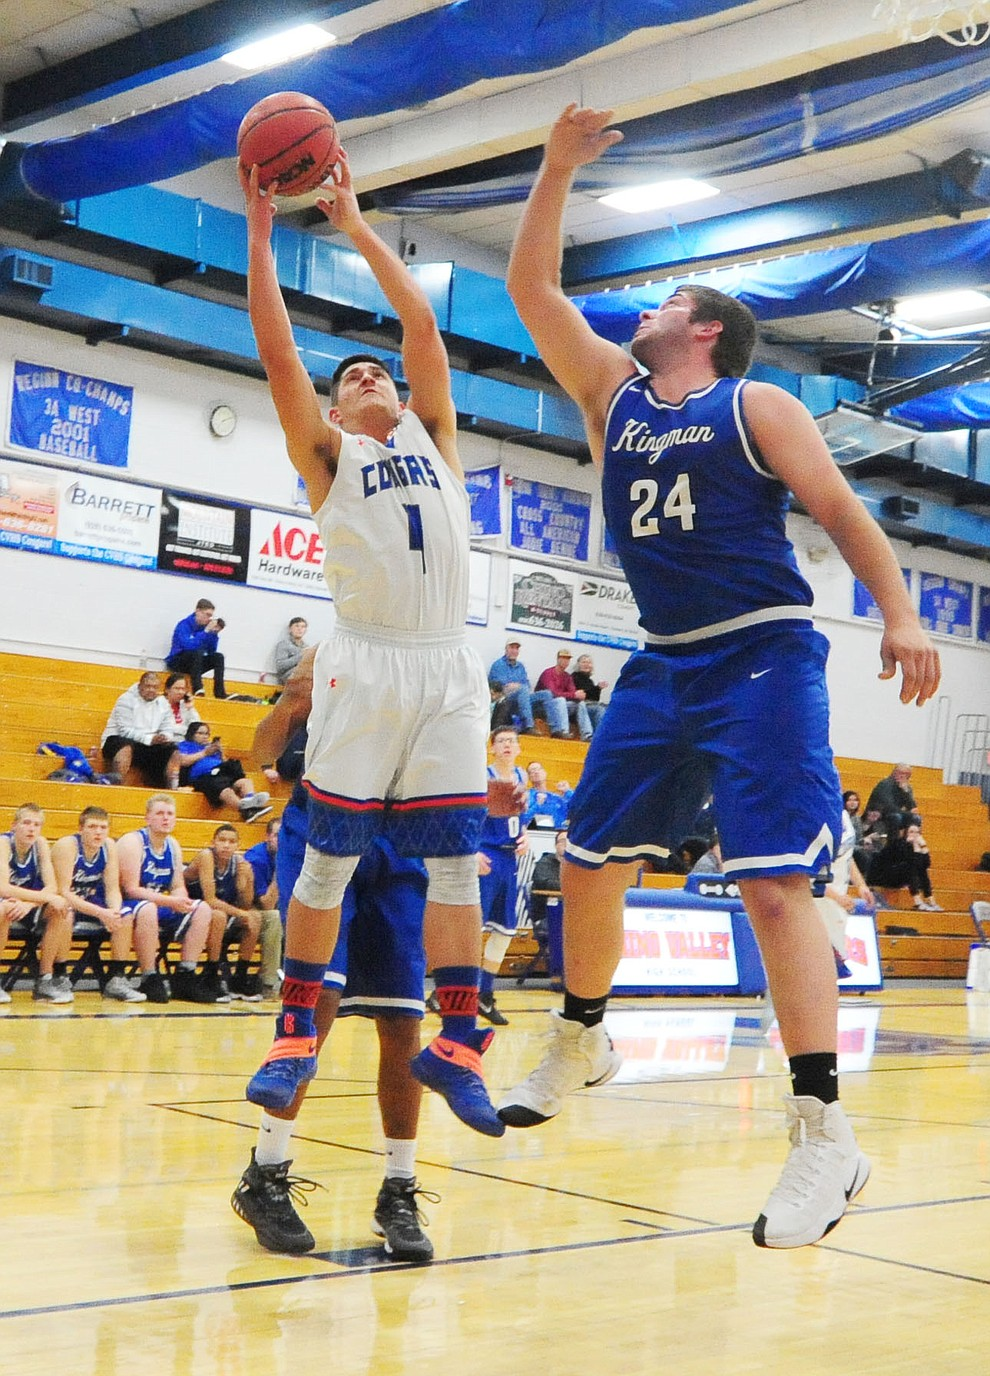 Chino Valley's Jaydon Loftin gets a shot off in the paint as the Cougars take on the Kingman Bulldogs Tuesday, January 10 in Chino Vallley. (Les Stukenberg/The Daily Courier)